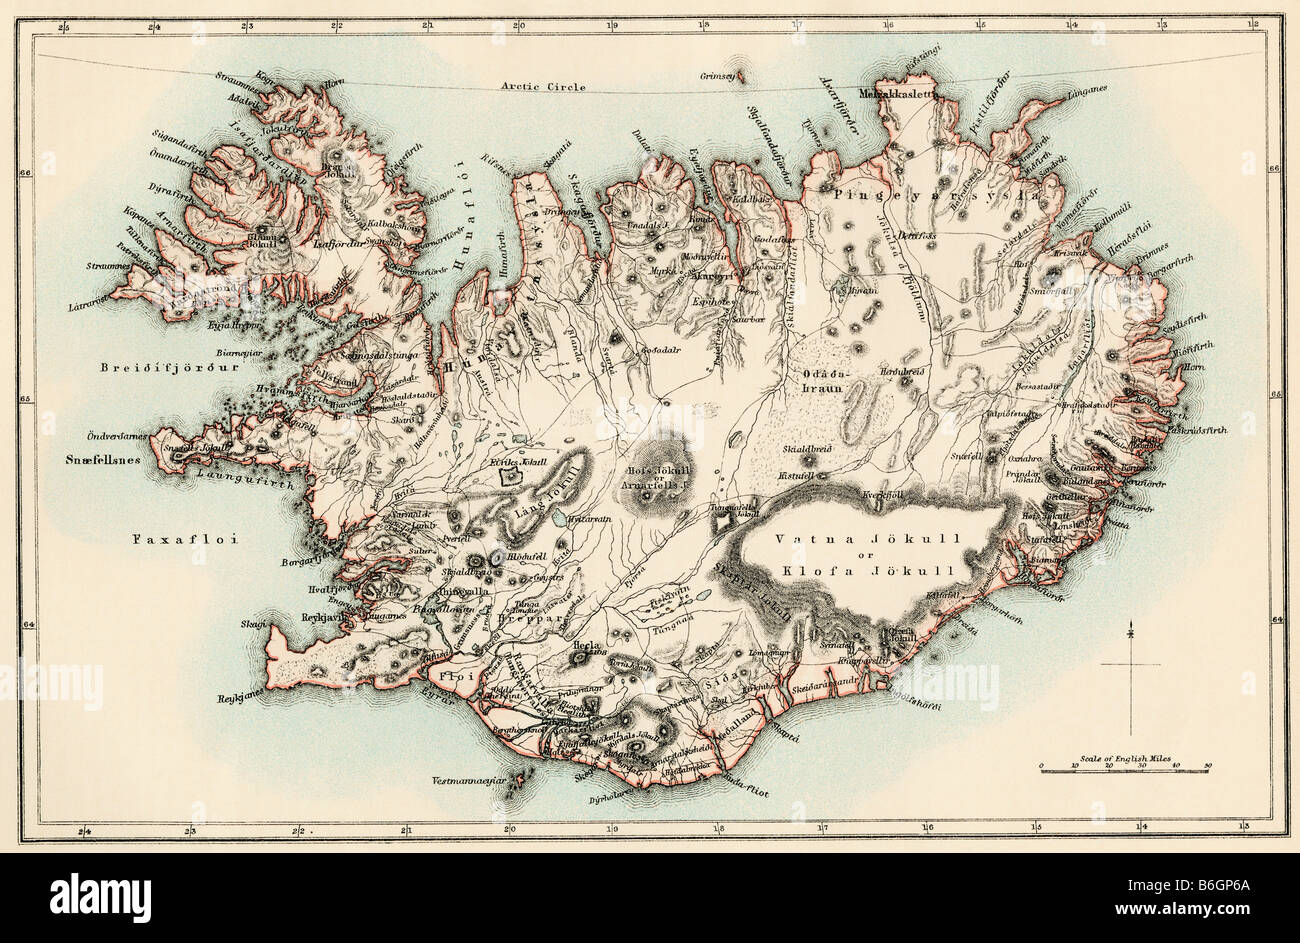 Map Iceland Stock Photos & Map Iceland Stock Images - Alamy